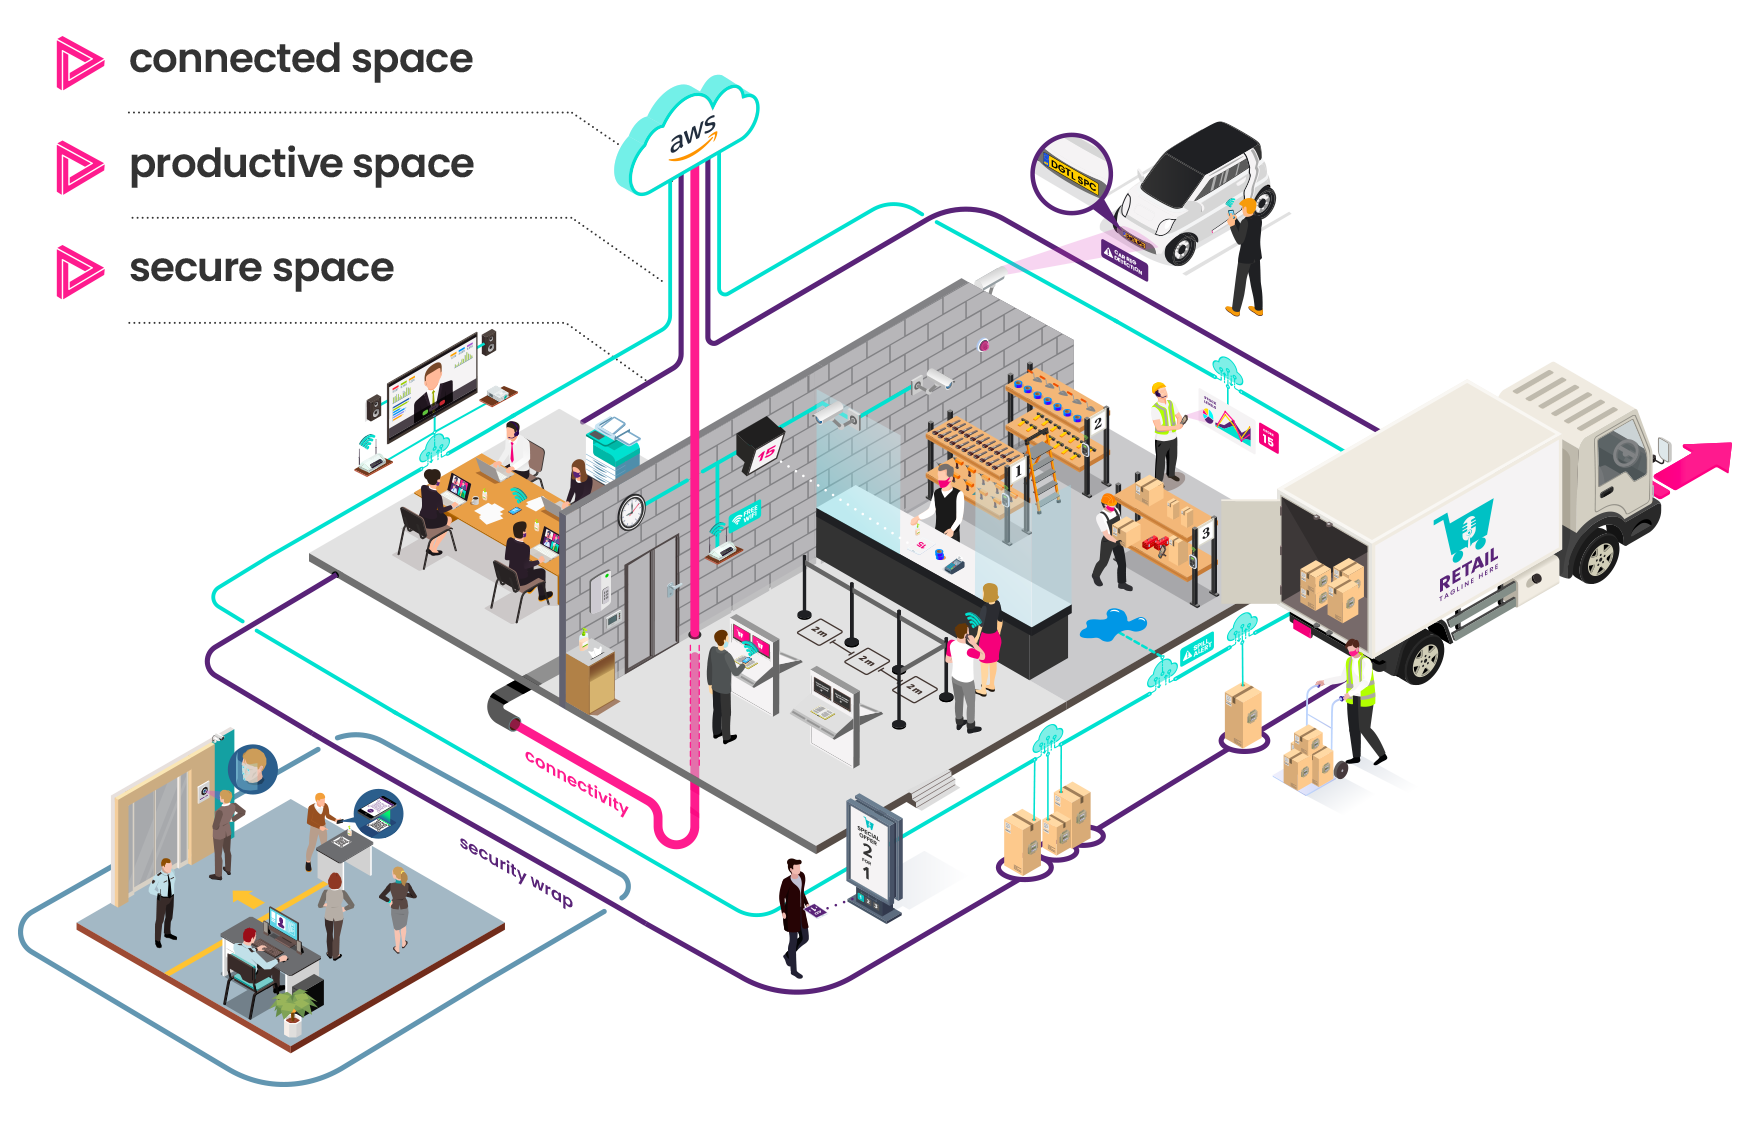 Digital Space - Retail, Hospitality and Leisure